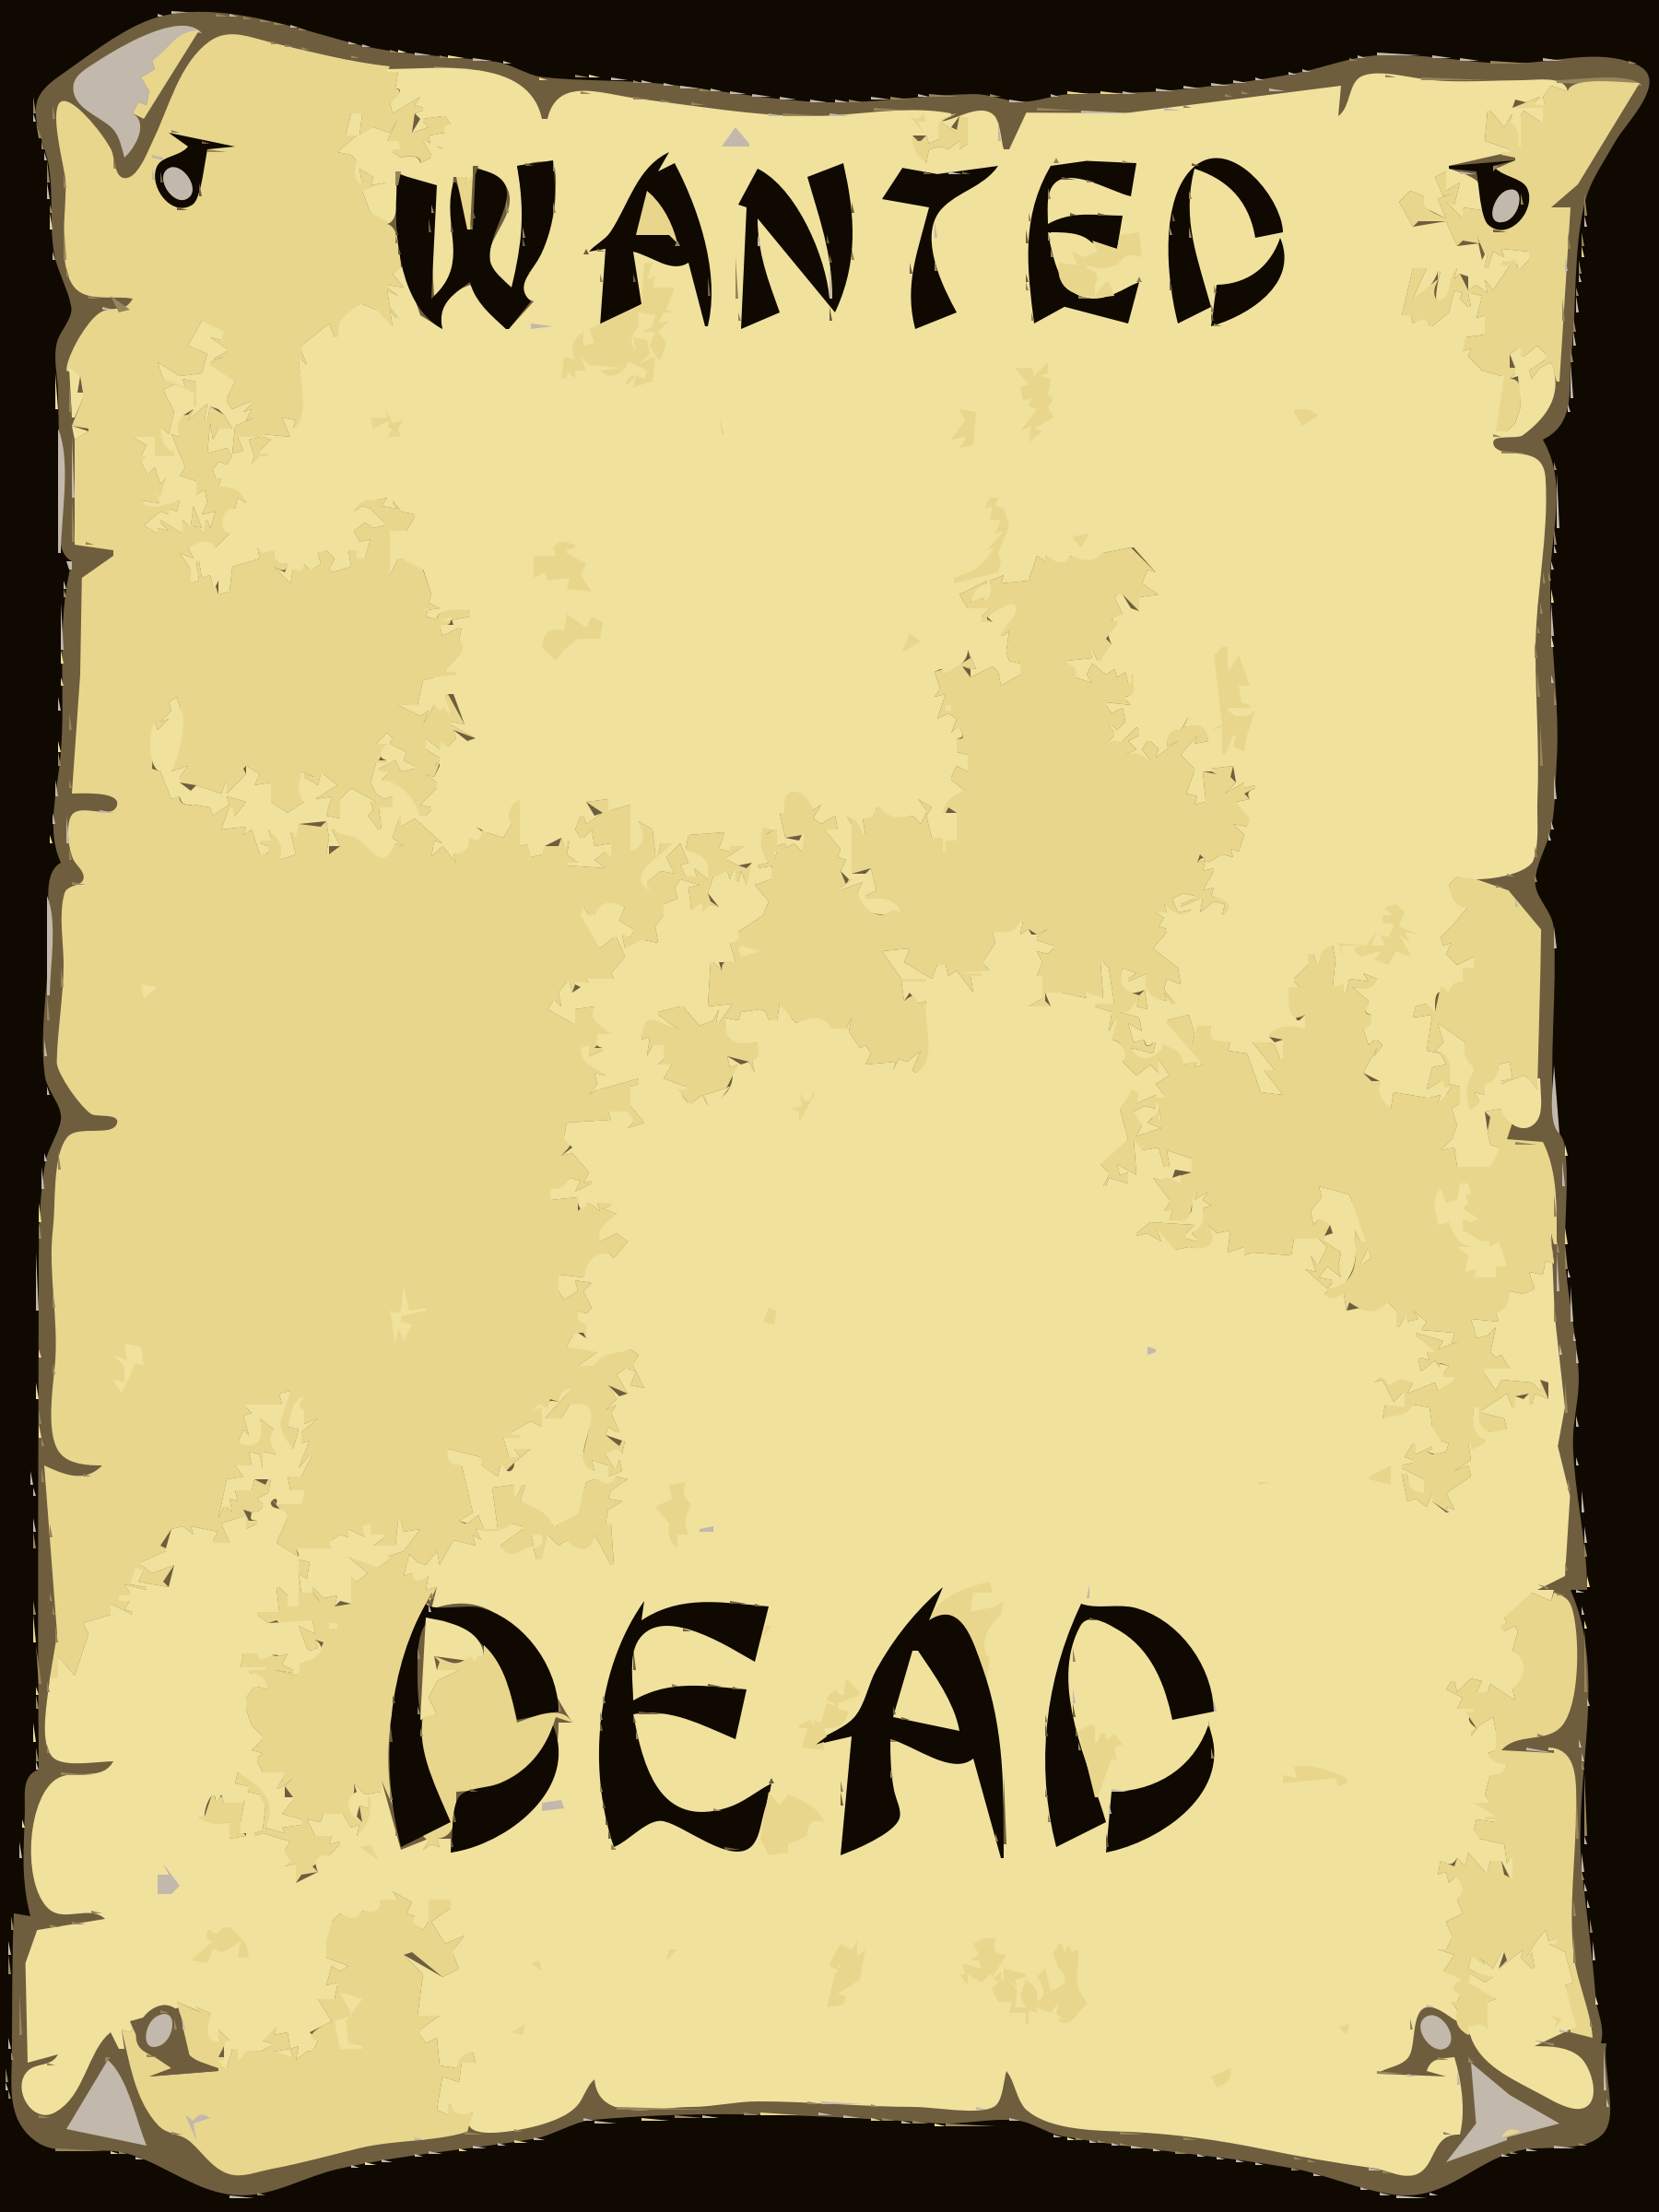 WANTED POSTER 4 by themidnyteryder83